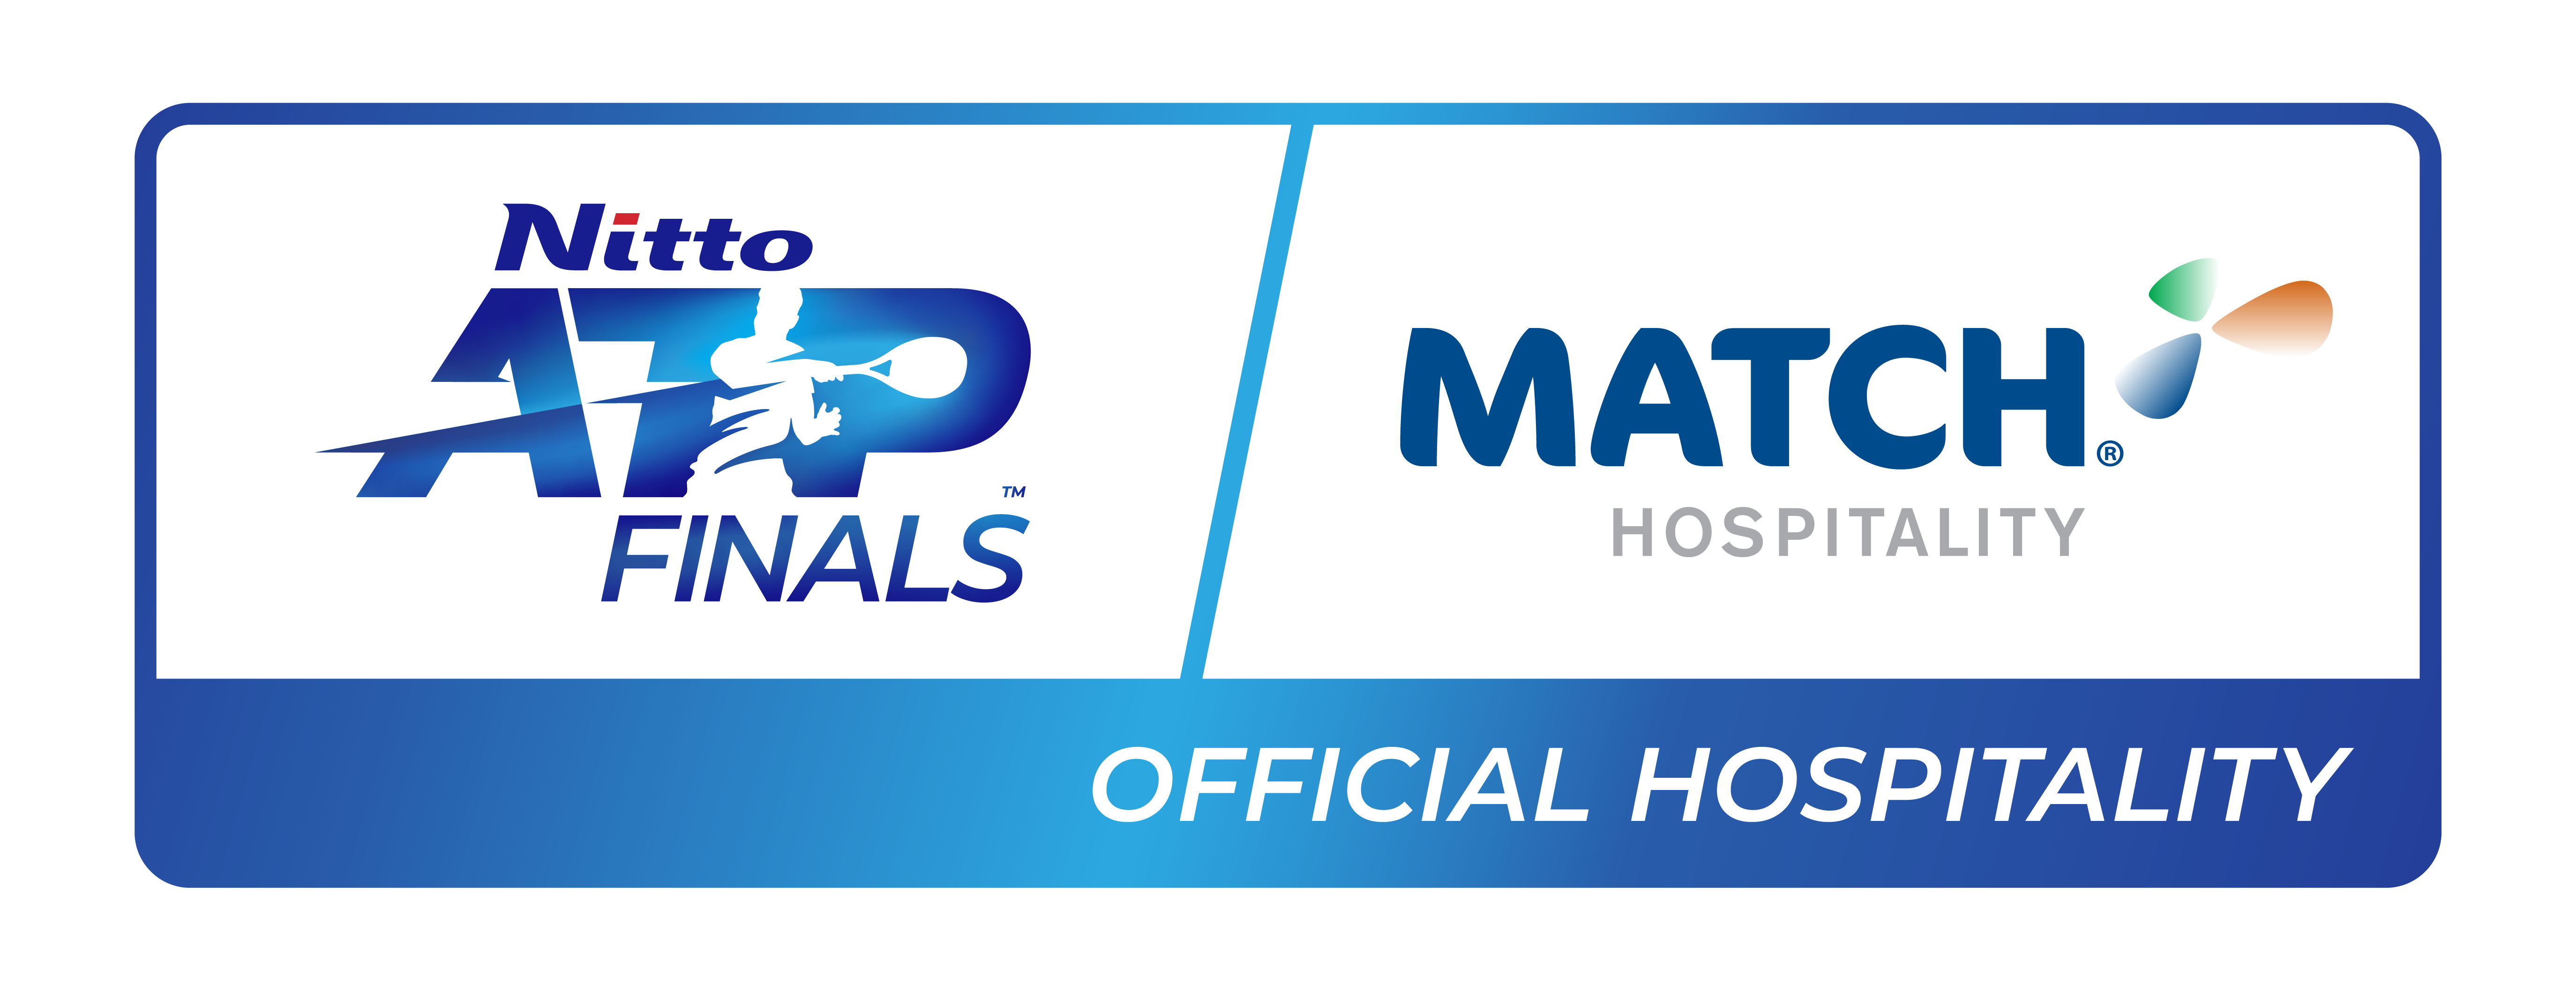 2019 NATPF_MATCH OfficialPartner_Horizontal_RGB